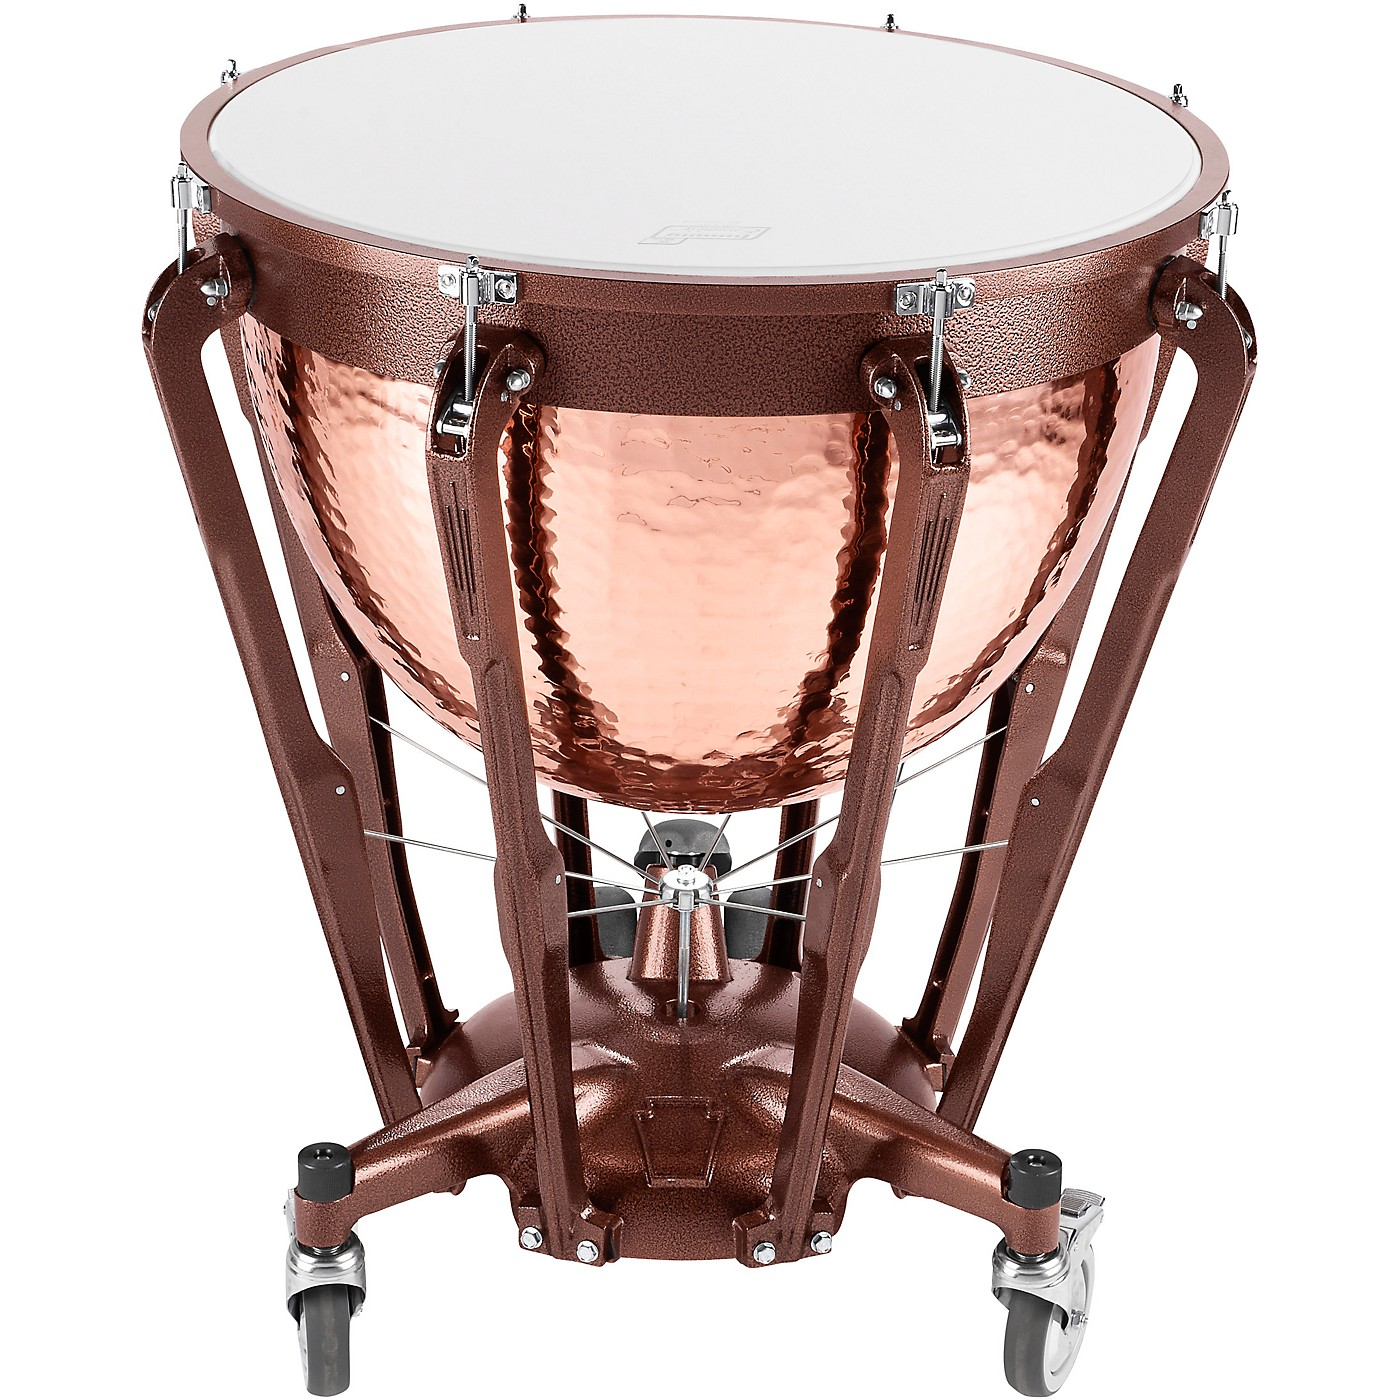 Ludwig Grand Symphonic Series Hammered Timpani with Gauge thumbnail